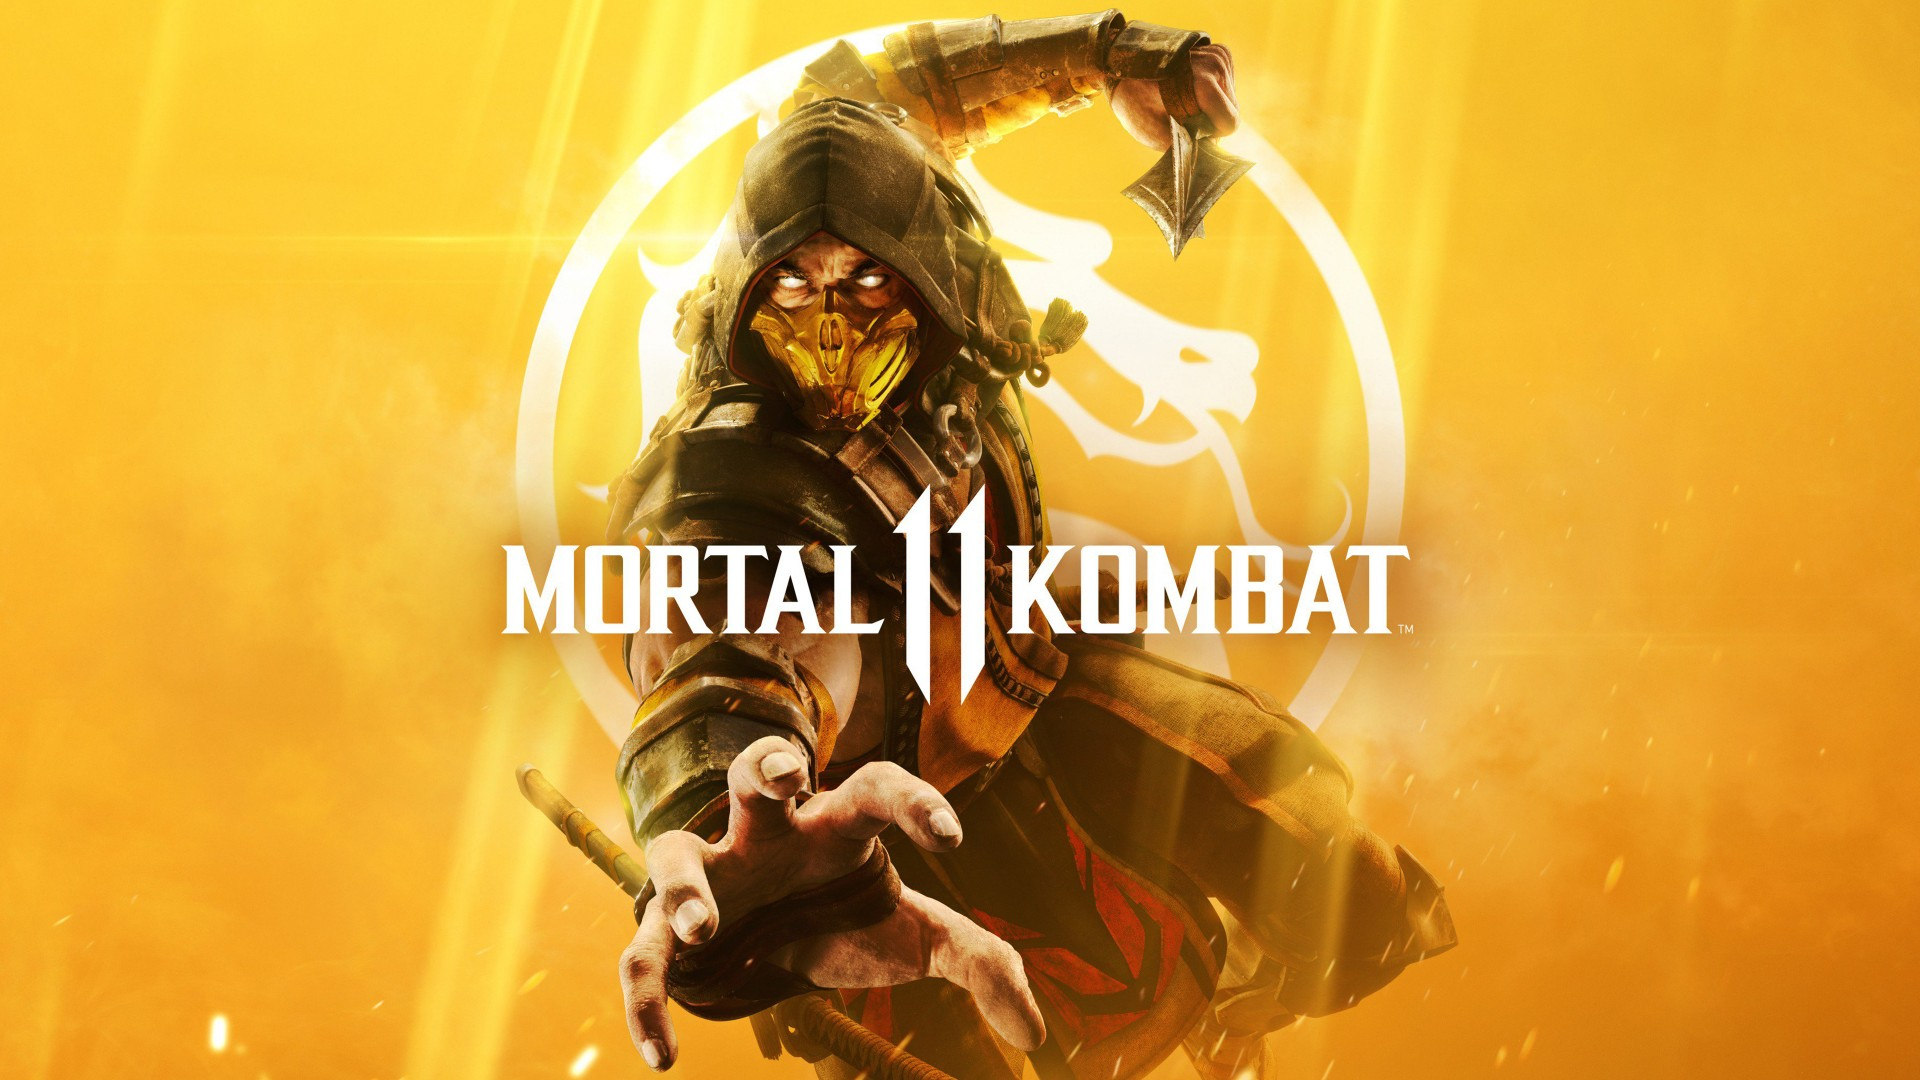 Top 10 3d Wallpapers For Android Mortal Kombat 11 Cover Art 4k Wallpapers Hd Wallpapers